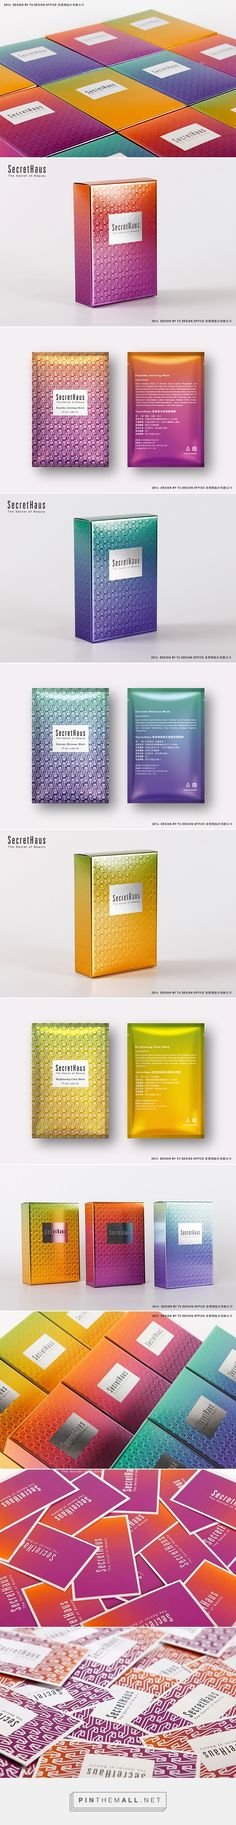 SecretHaus |cosmetic brand | face care PD